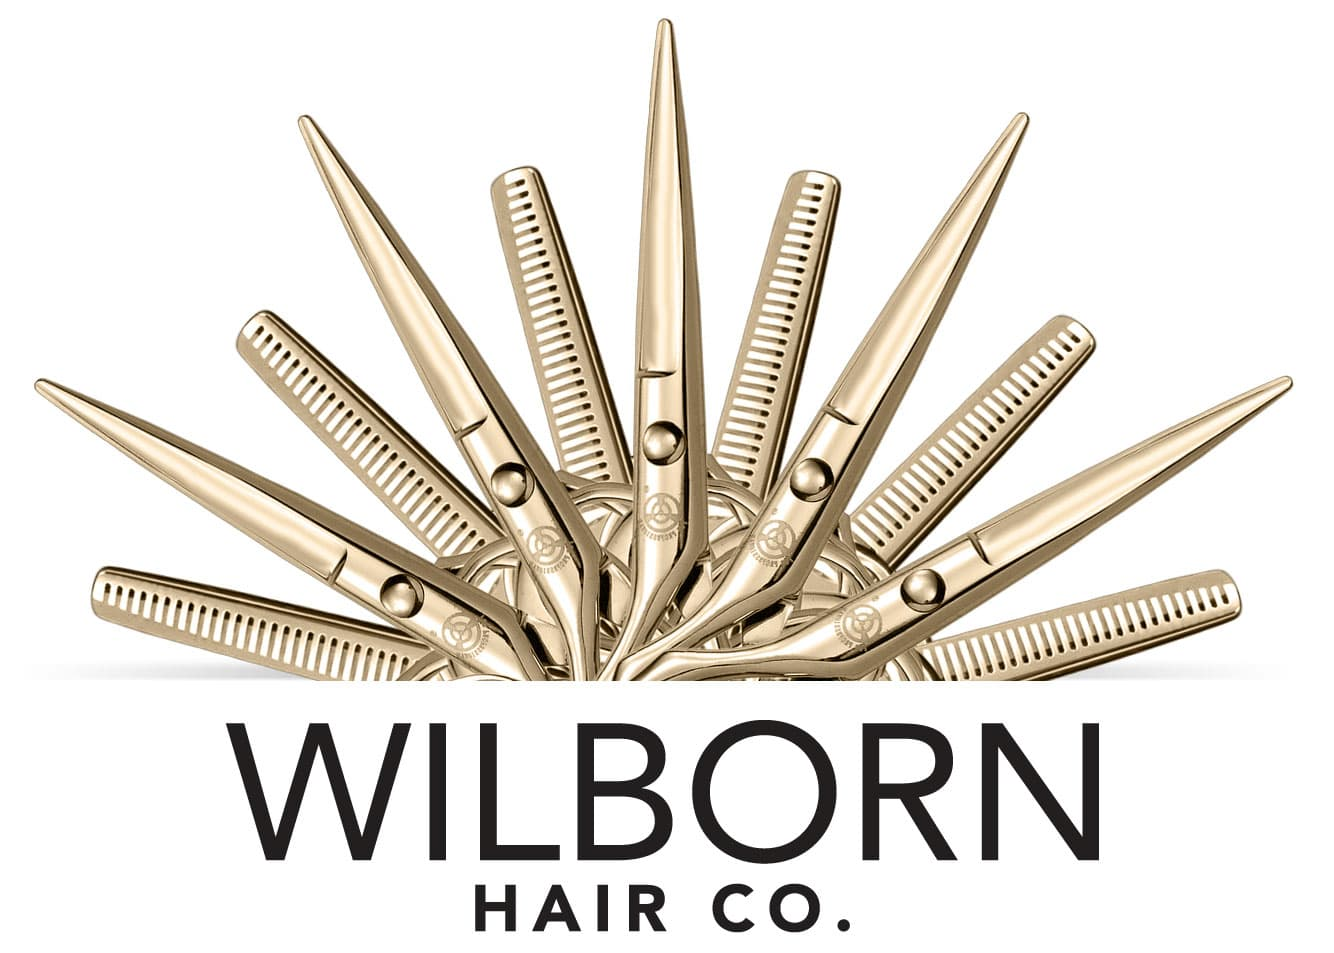 Wilborn Hair Co., A Wichita KS Hair Salon